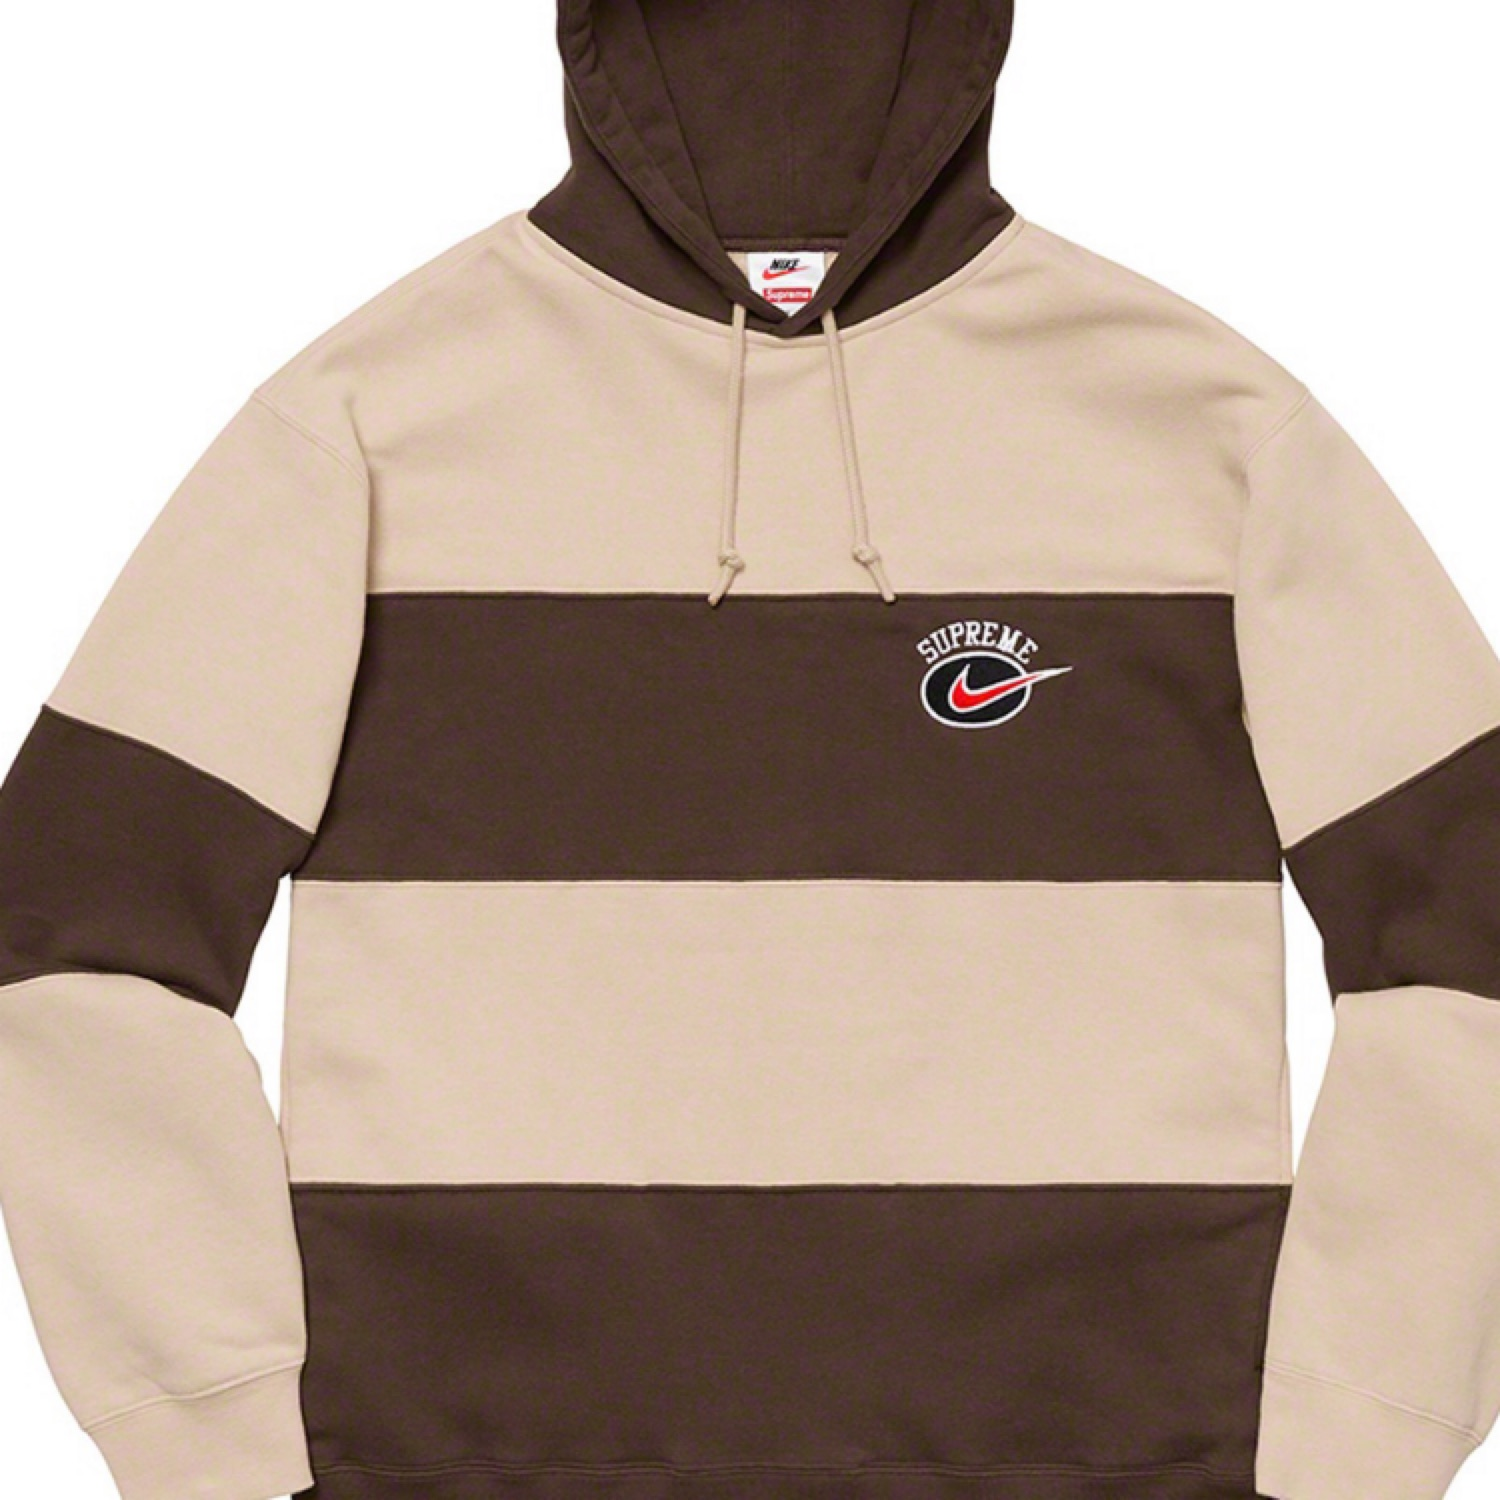 Nike Stripe Sweatshirt X Supreme Hooded rCQshtdx